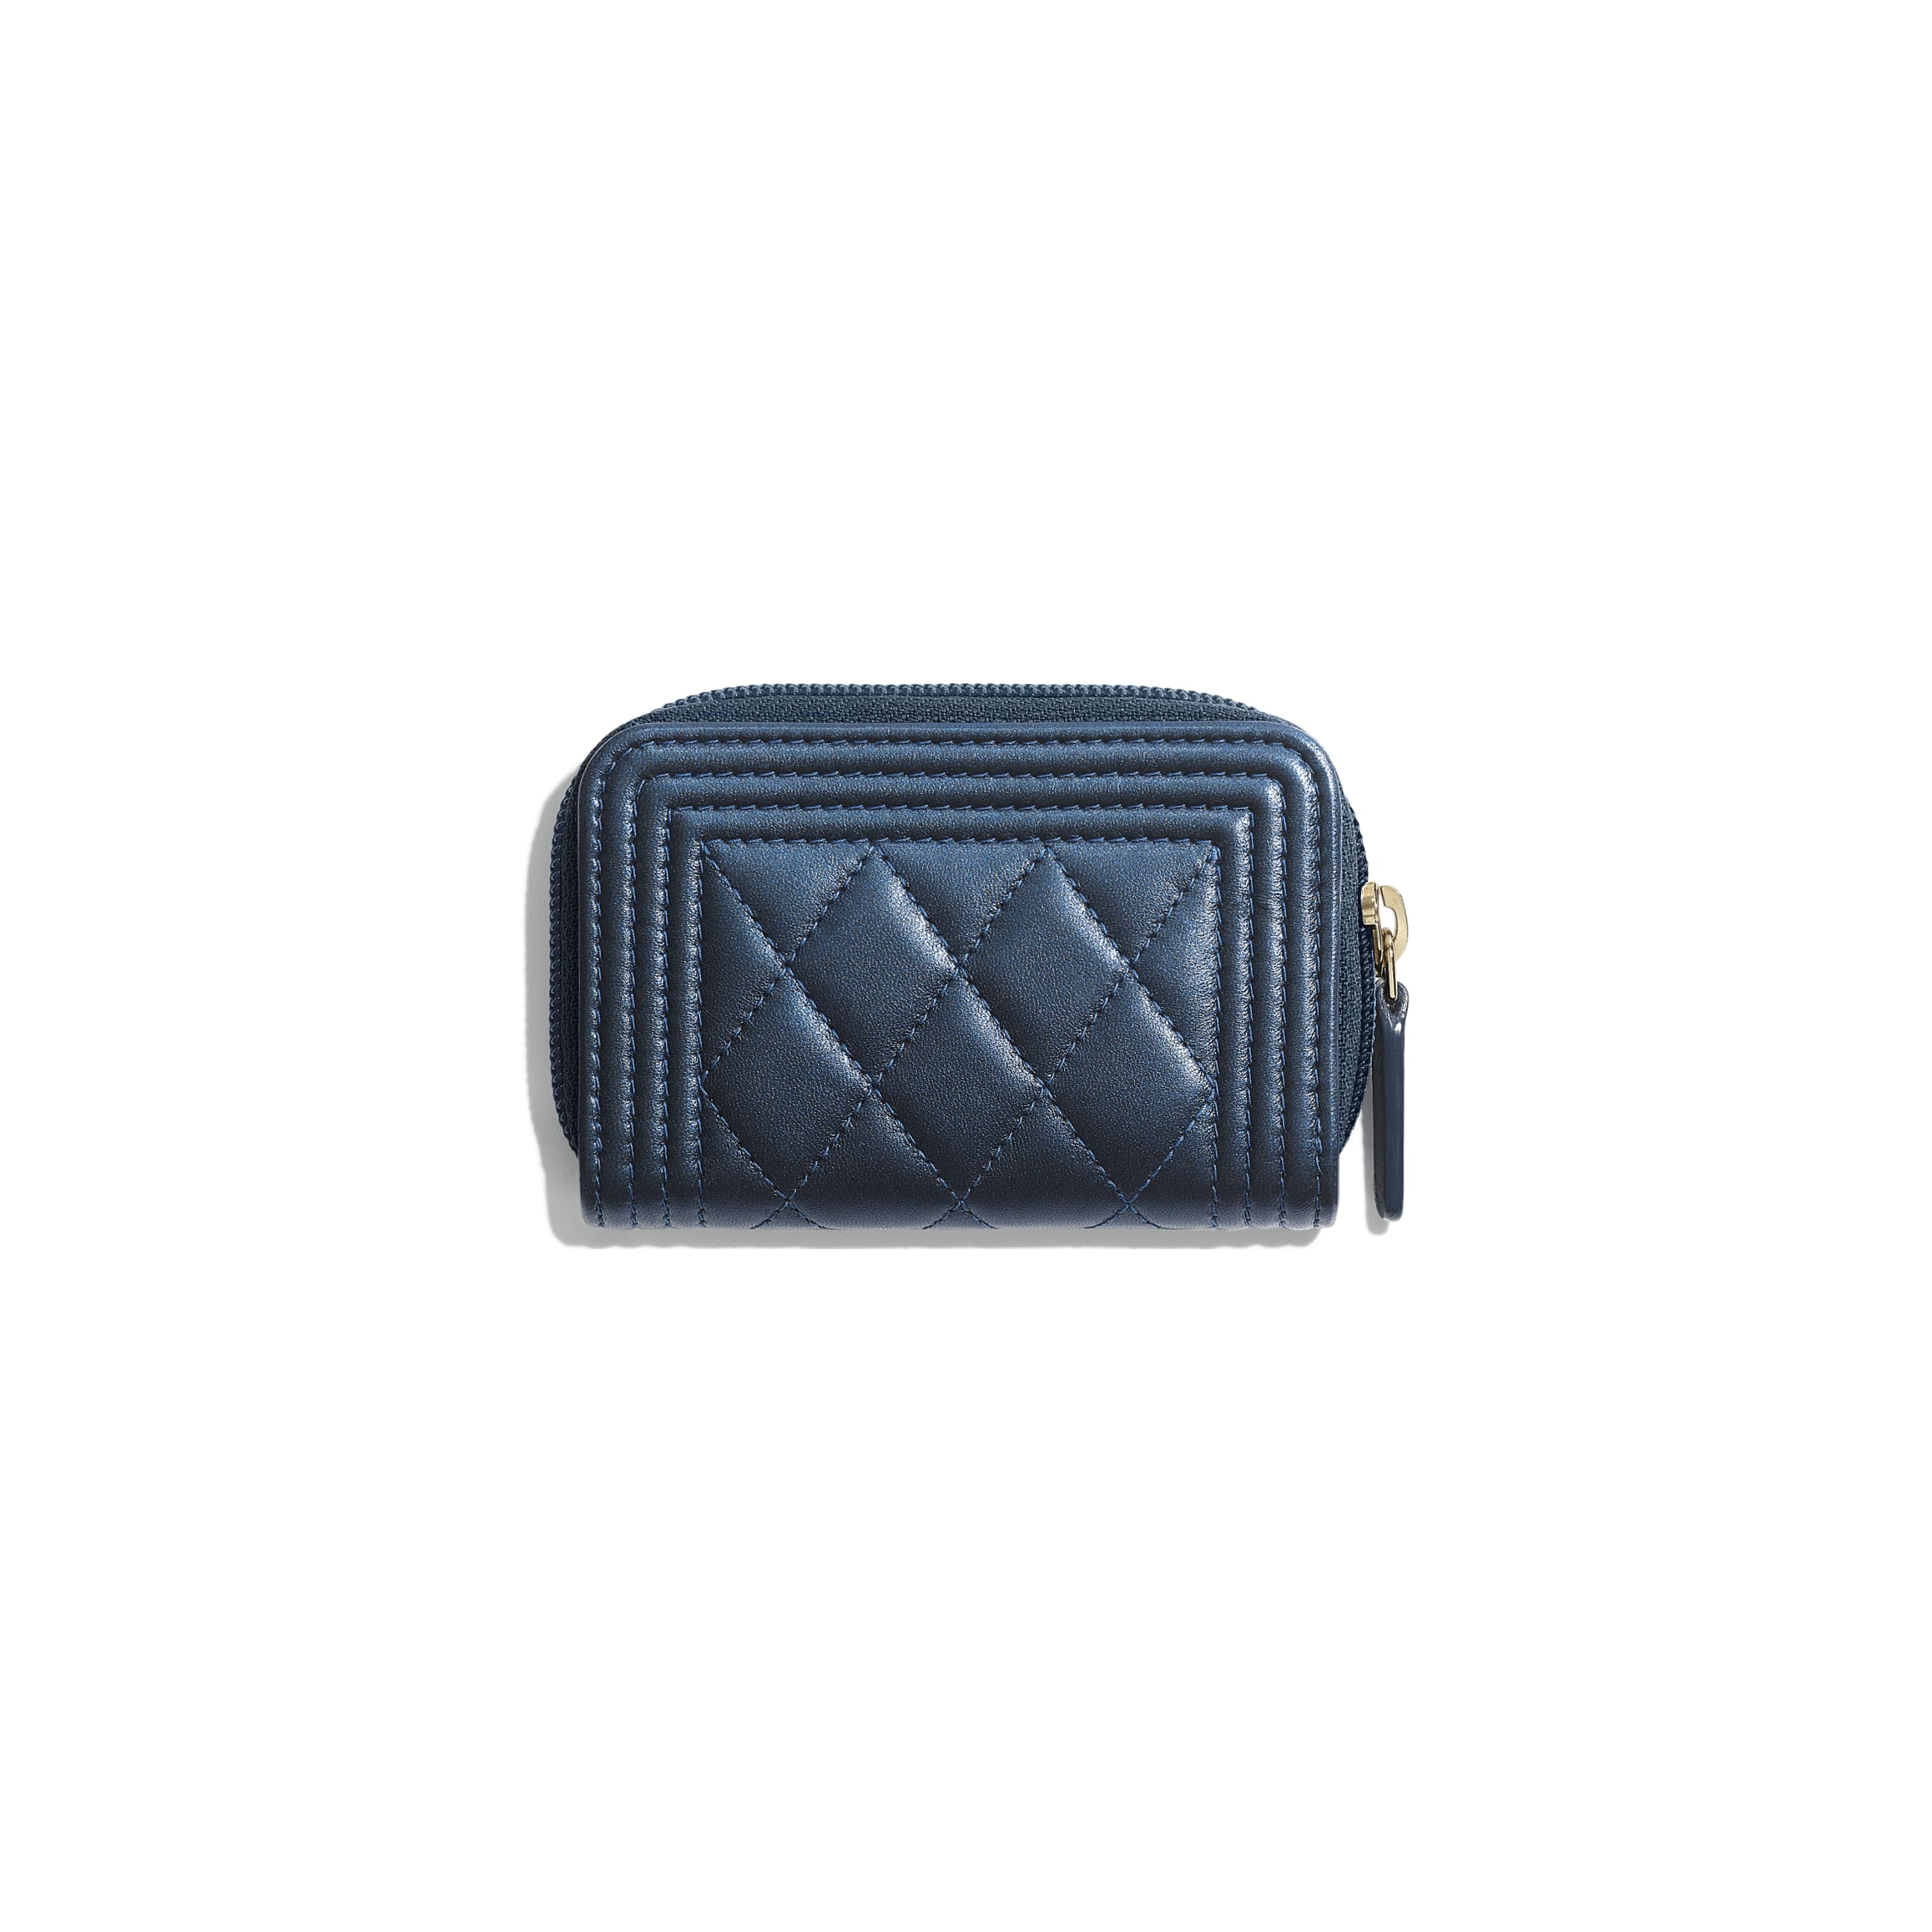 BOY CHANEL Zipped Coin Purse - Navy Blue - Metallic Lambskin & Gold Metal - CHANEL - Alternative view - see standard sized version